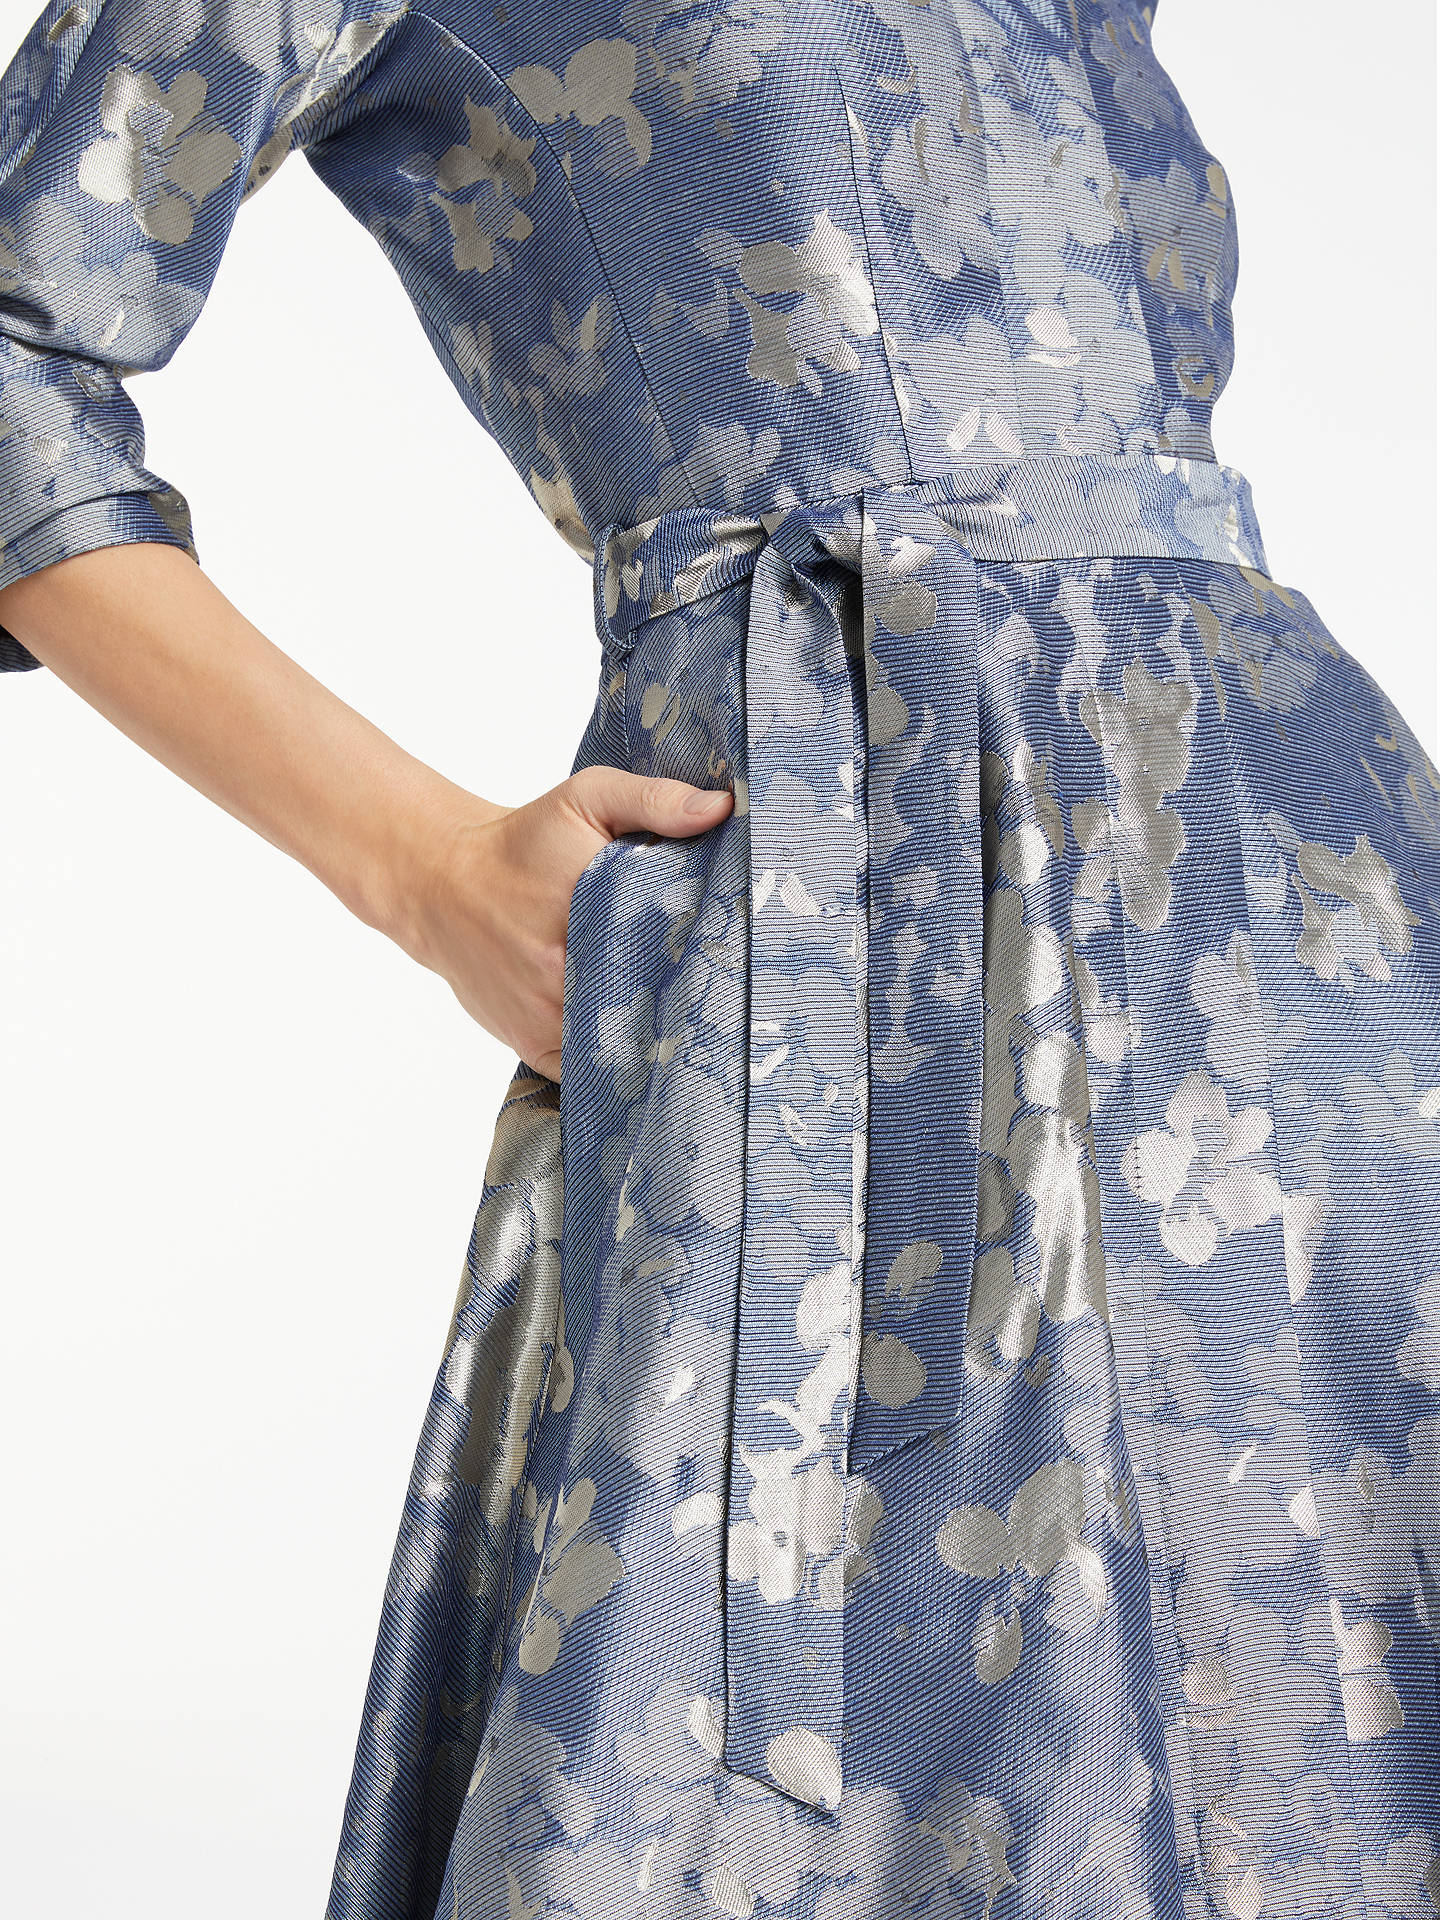 BuyBruce by Bruce Oldfield Floral Jacquard Dress, Blue, 8 Online at johnlewis.com